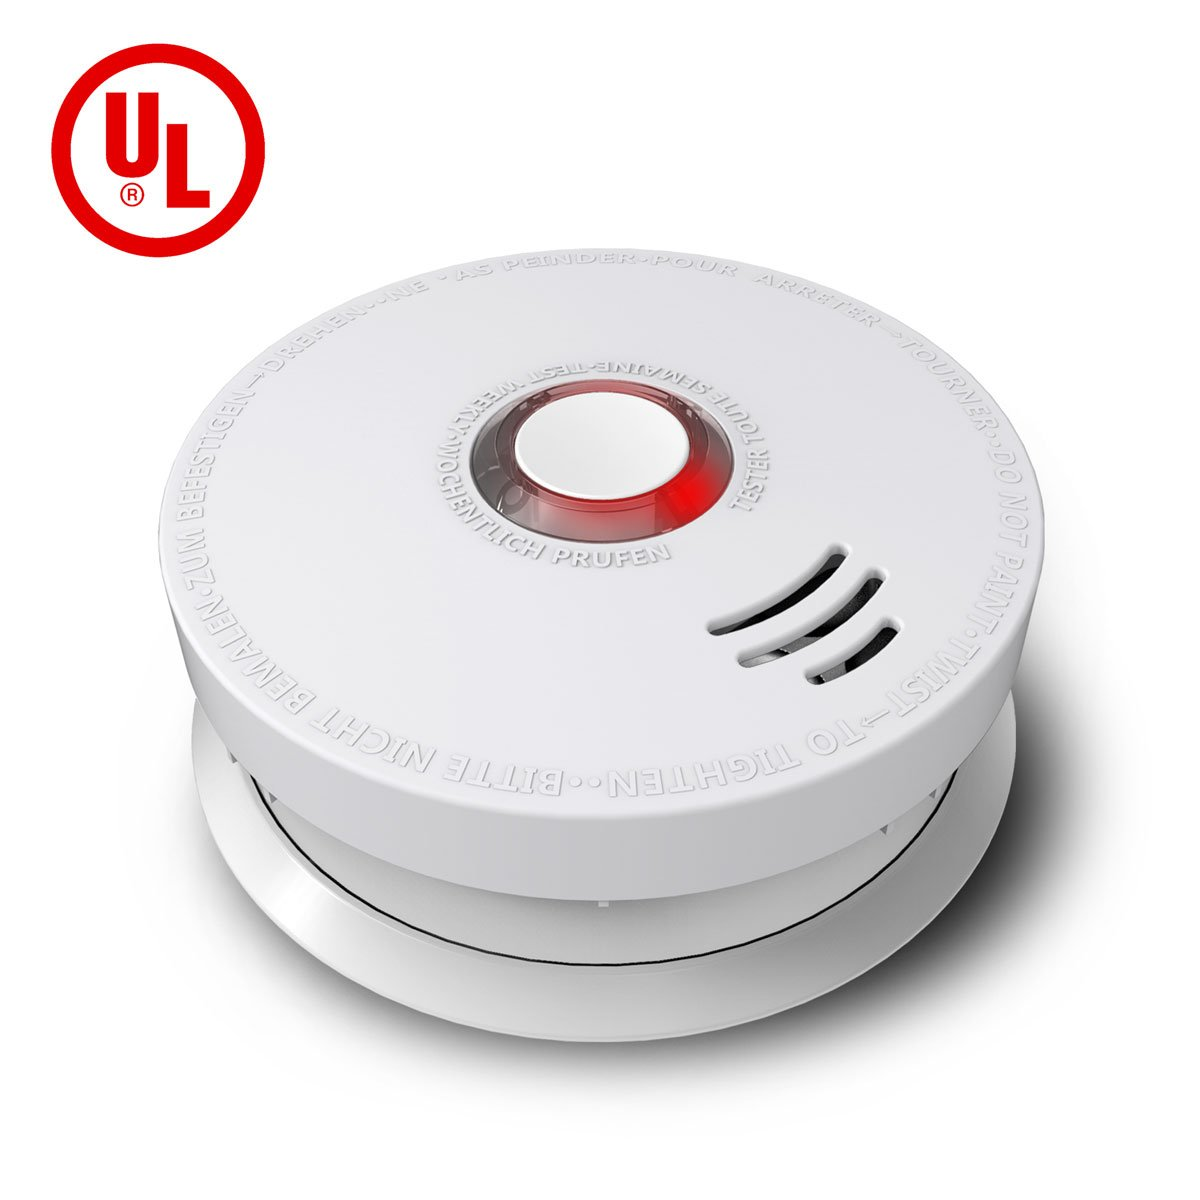 Ardwolf GS528A Battery-Powered Smoke and Fire Alarm with UL Listed